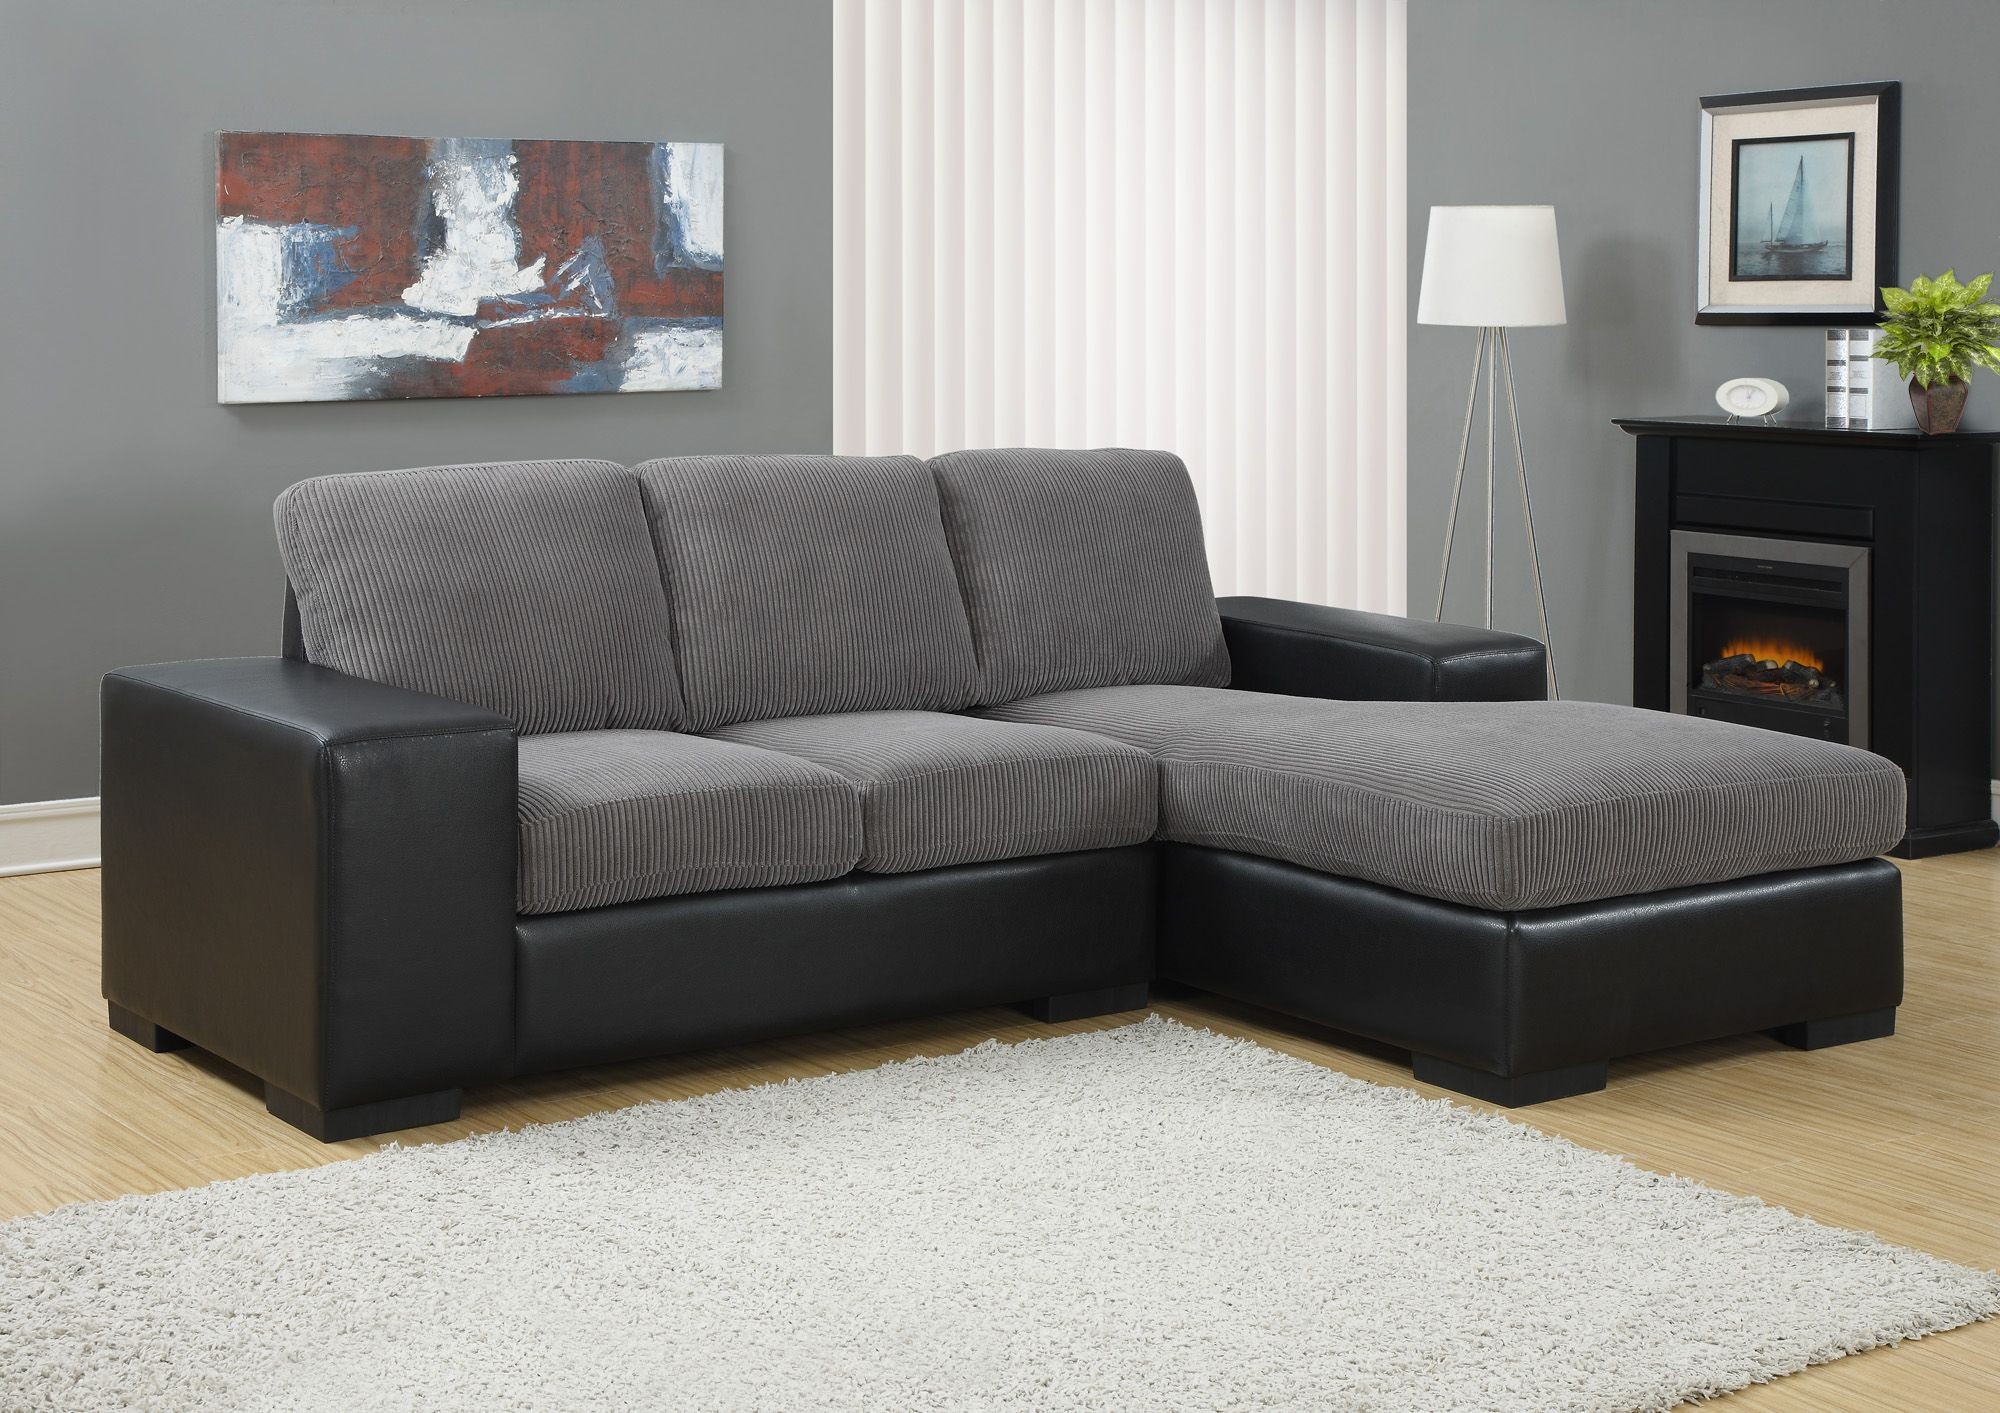 Charcoal gray corduroy black sofa sectional from monarch for Black fabric couches